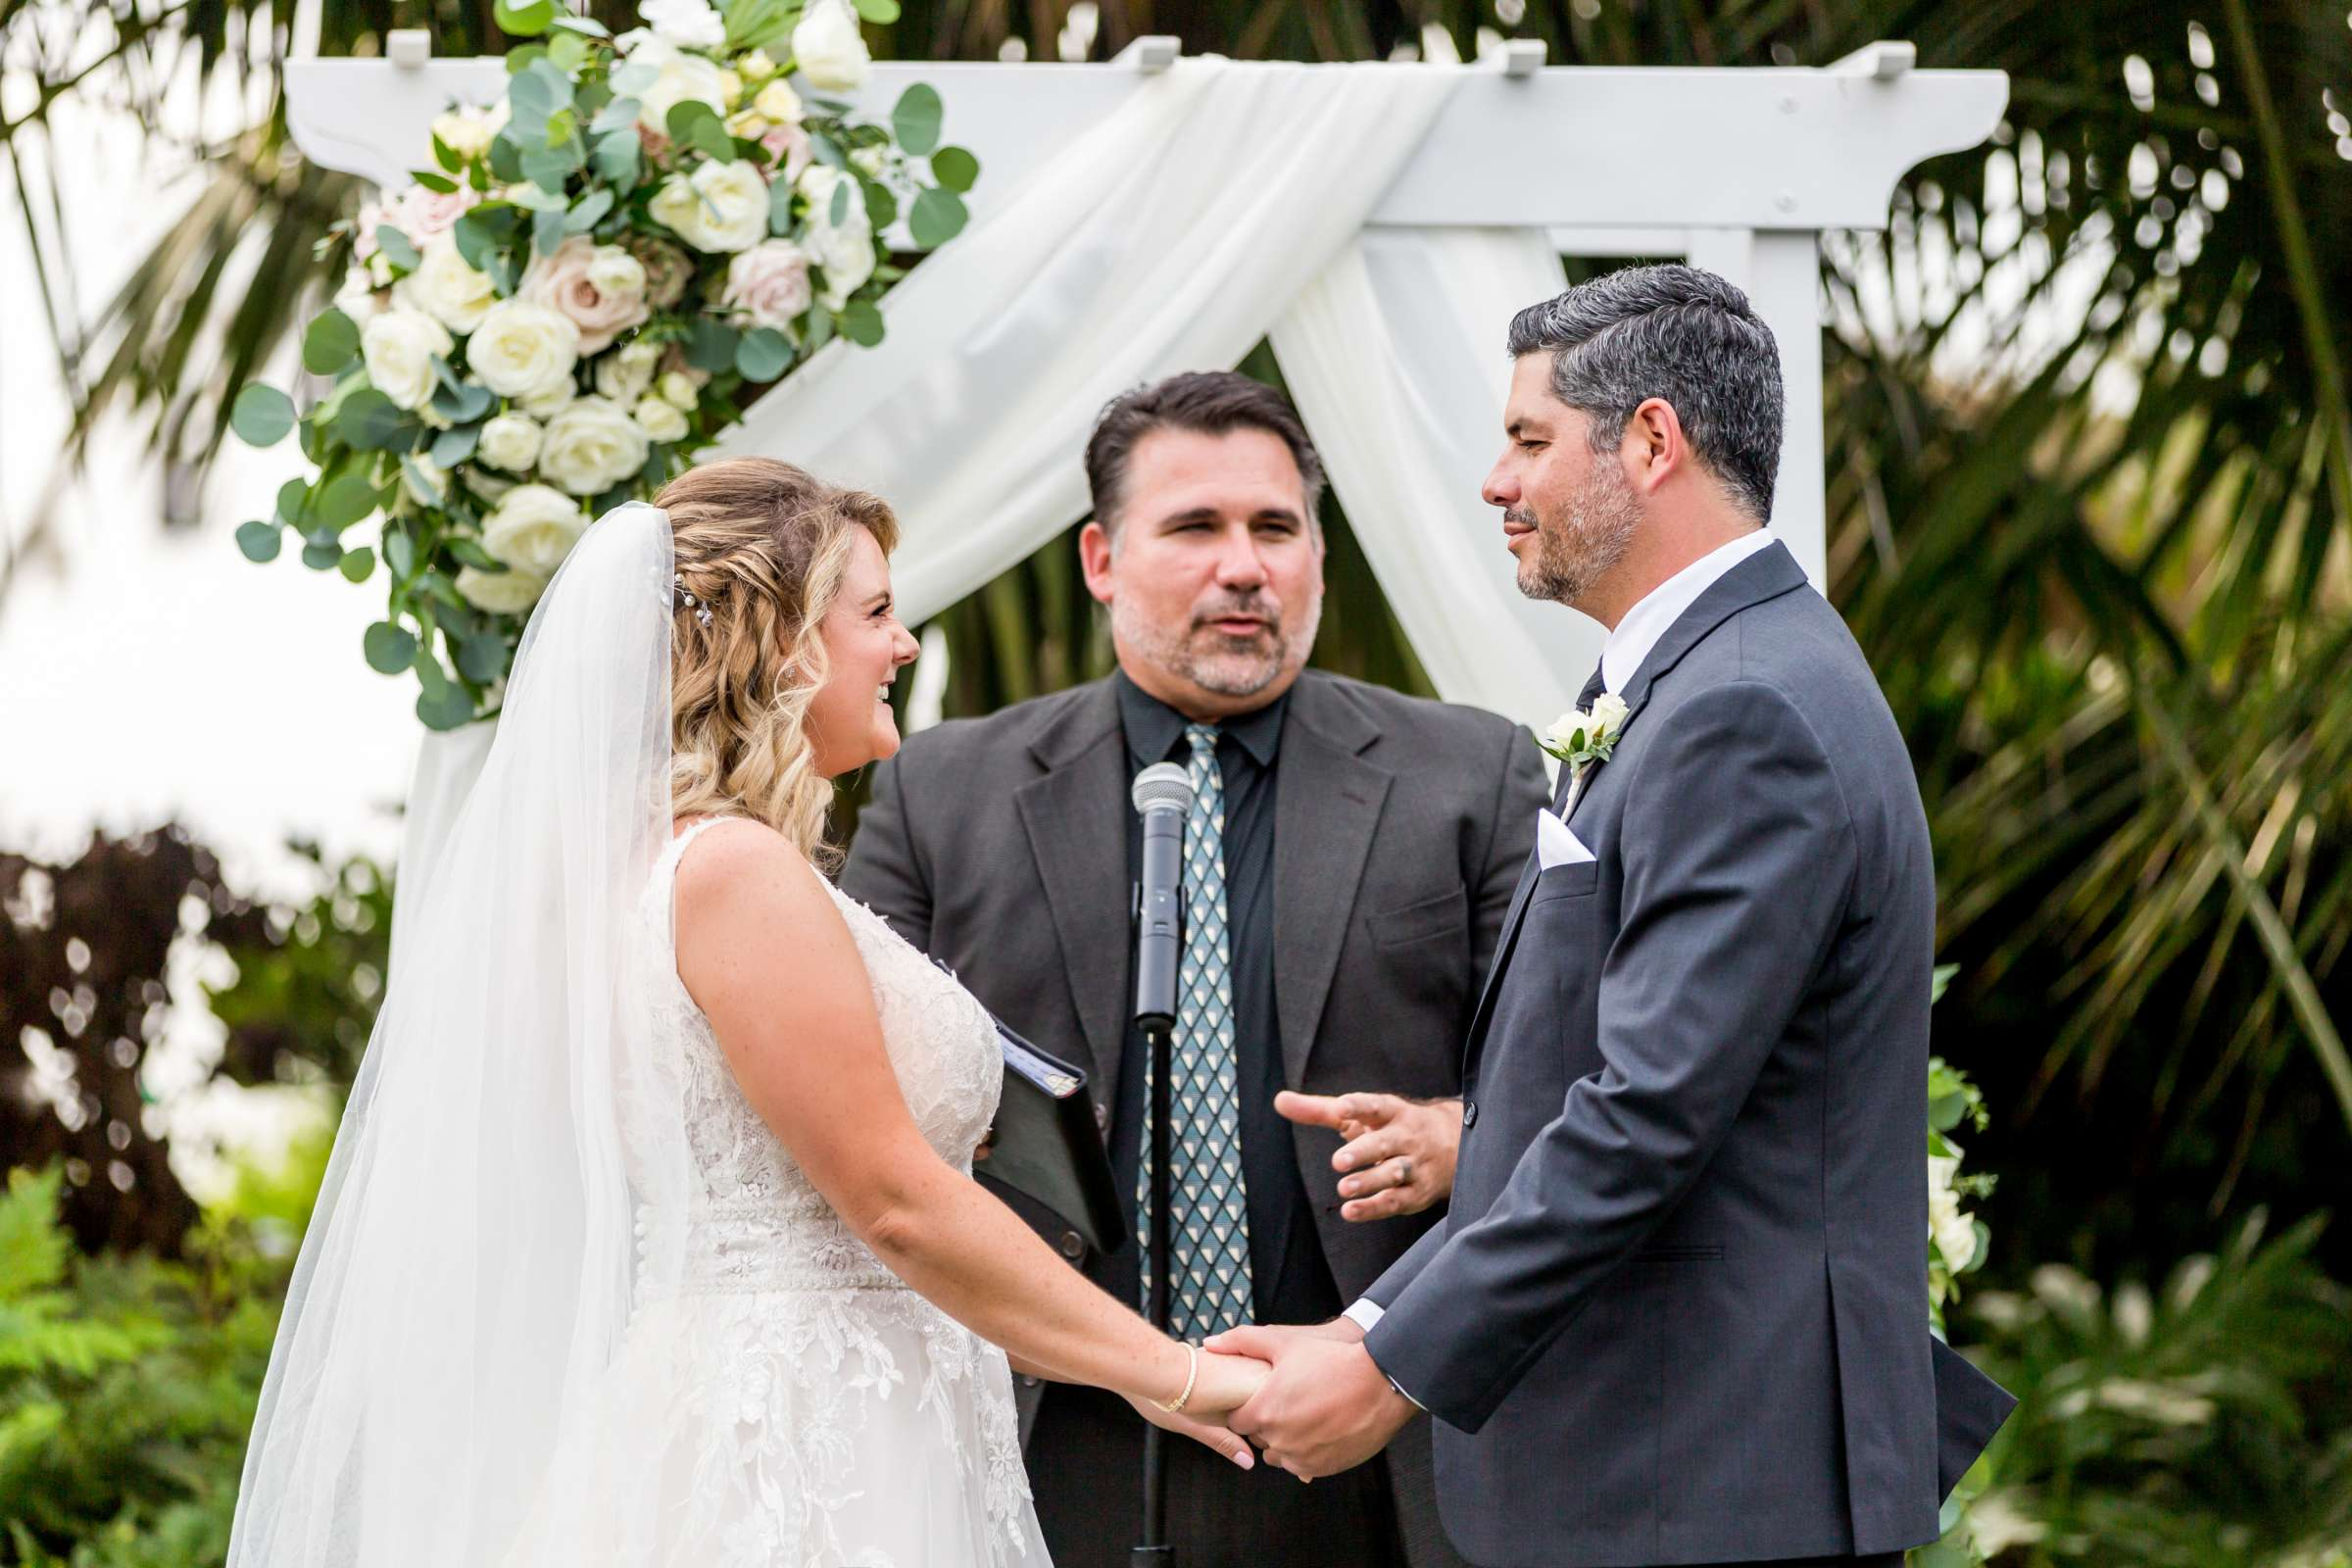 Cape Rey Carlsbad, A Hilton Resort Wedding, Michelle and Justin Wedding Photo #60 by True Photography